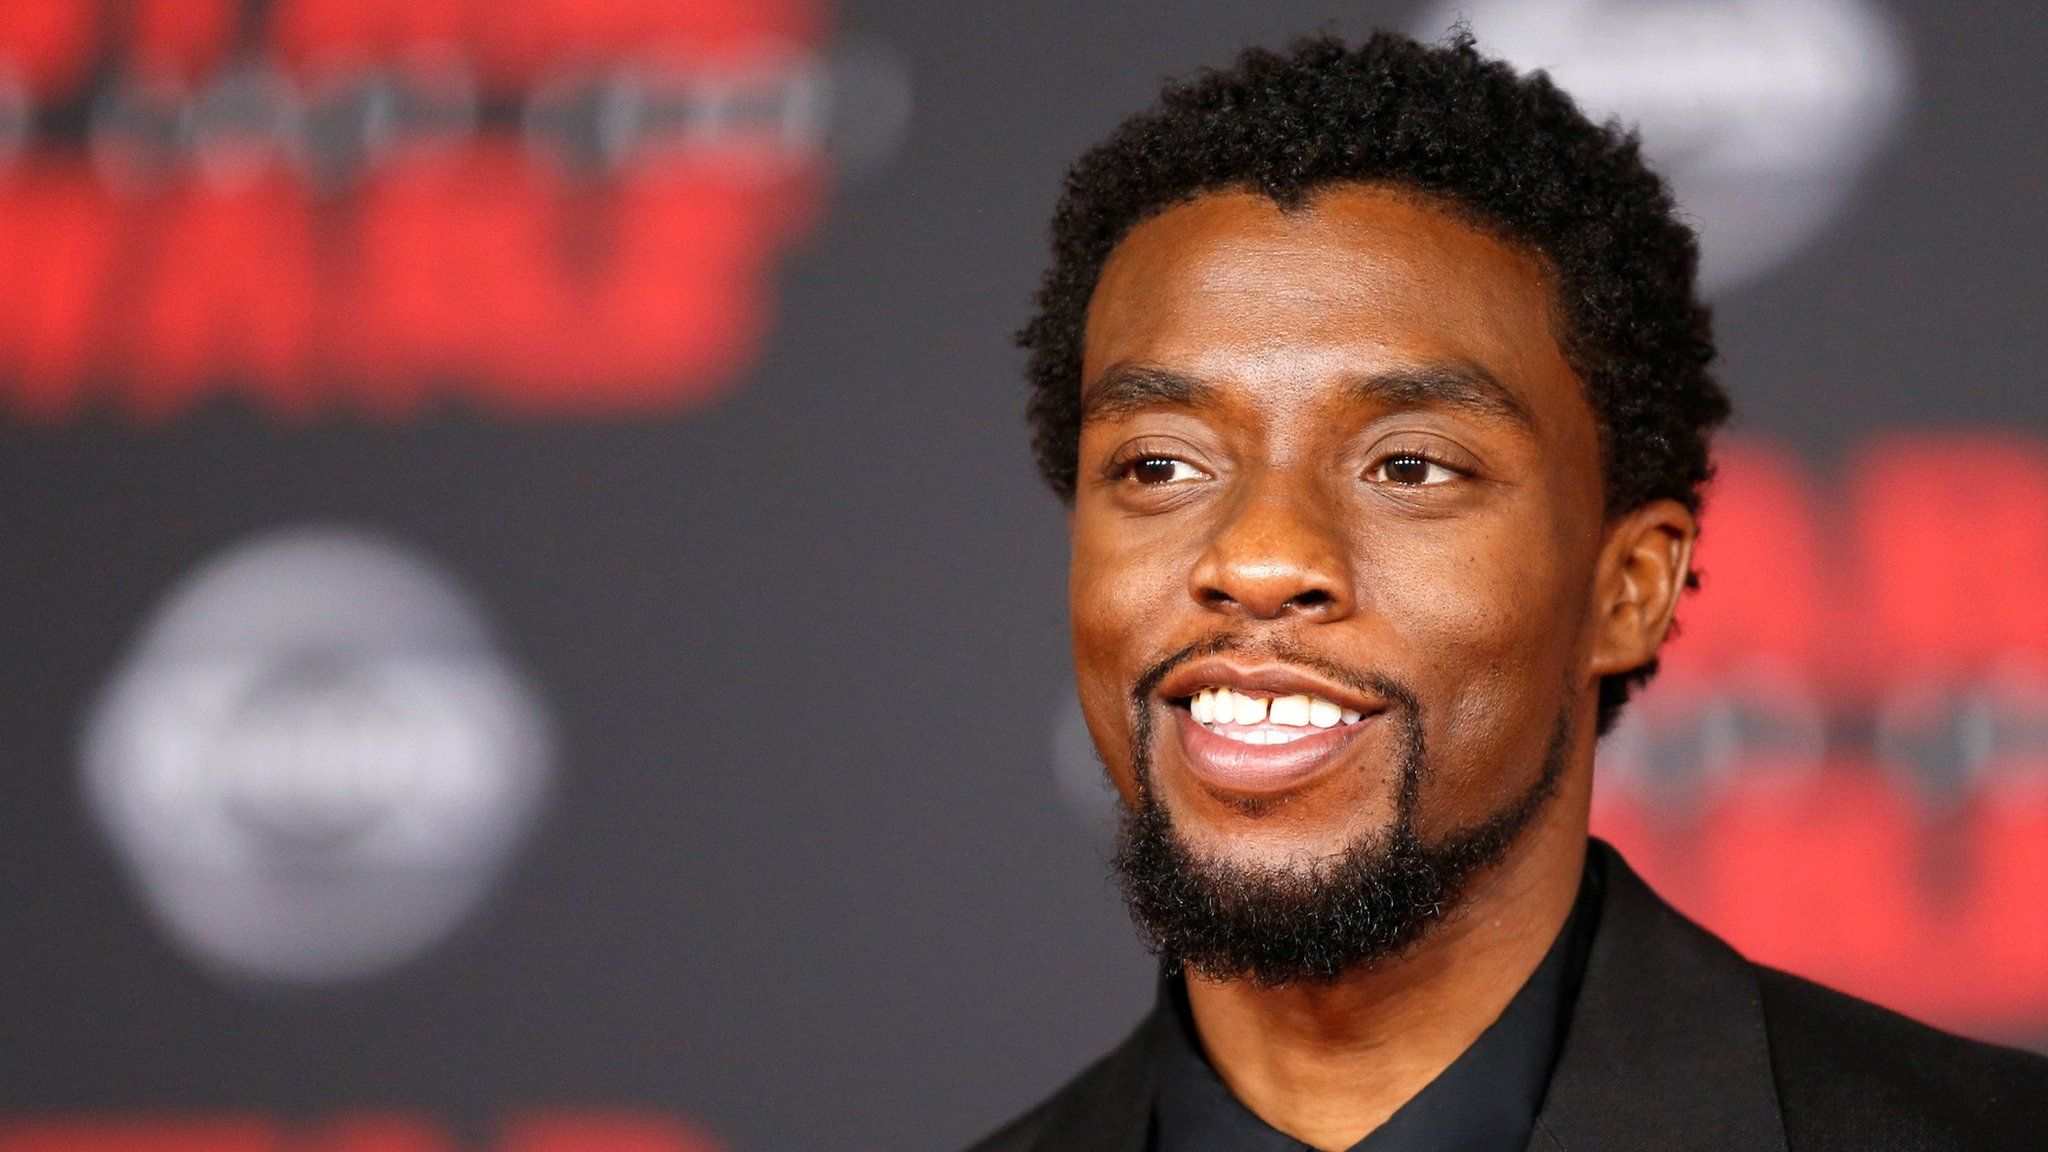 Chadwick Boseman – 'Black Panther' Co-Stars And Many More Actors And Fans Honor The Late Actor On What Would Have Been His 44th Birthday!